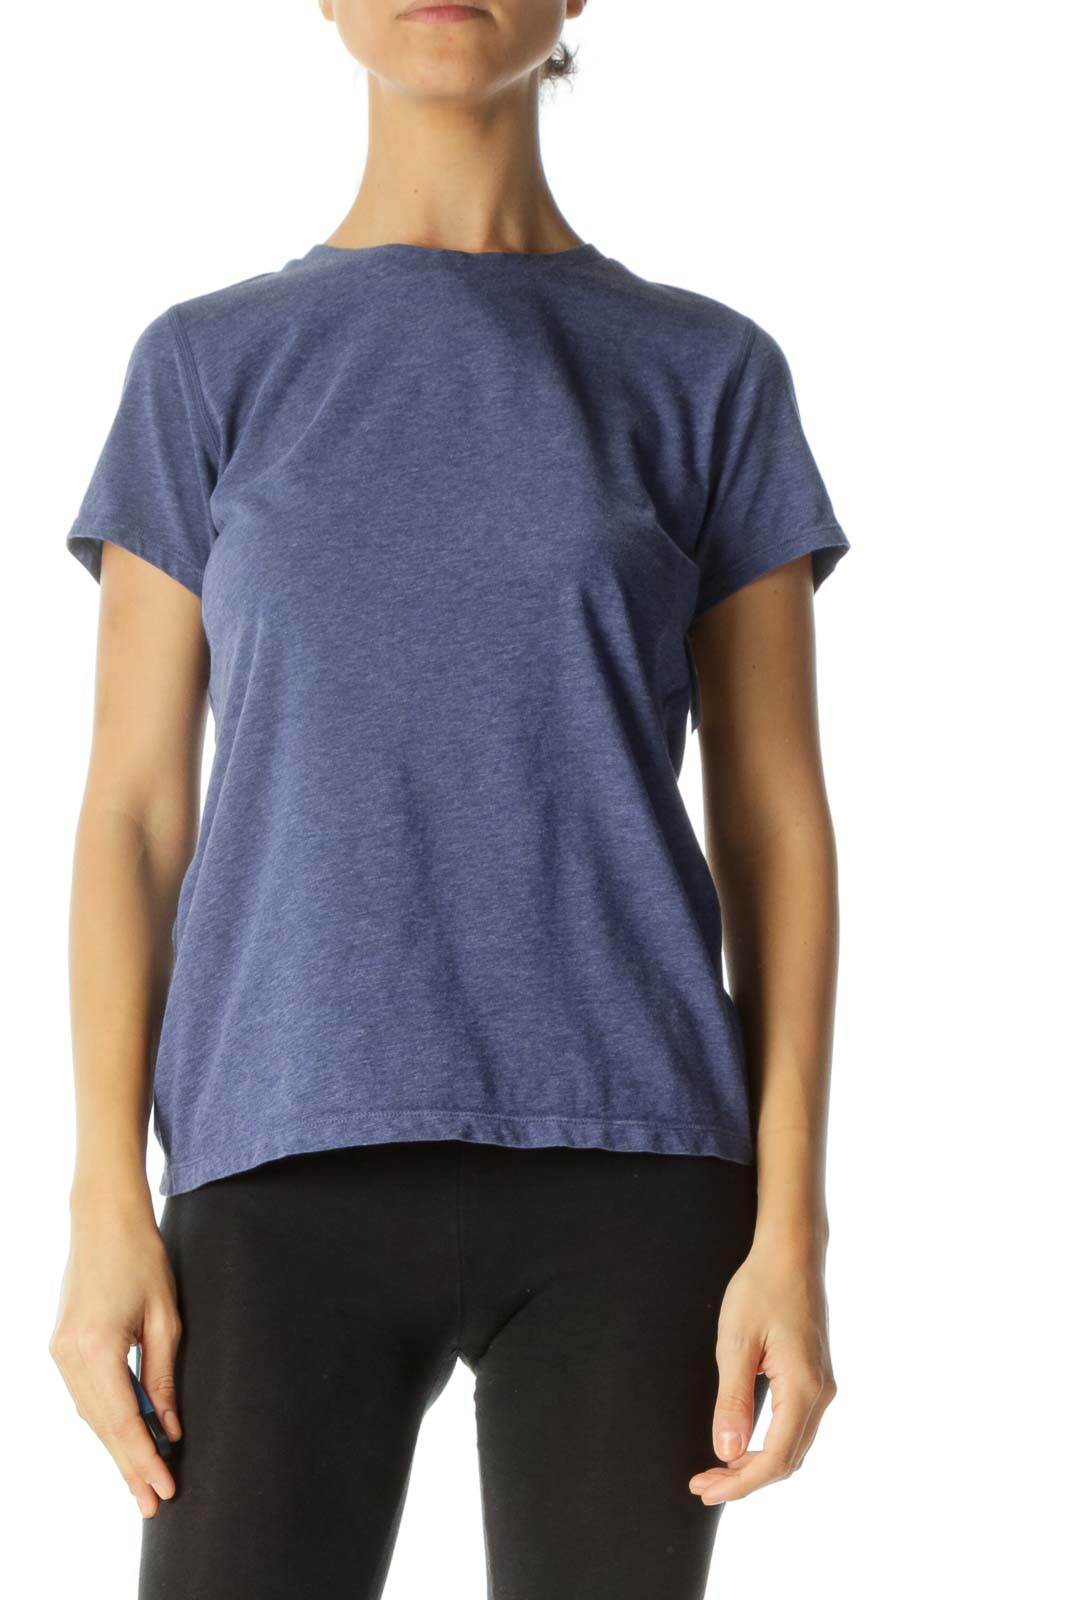 Heathered Navy Short-Sleeve Fitted Active-Wear Top Front